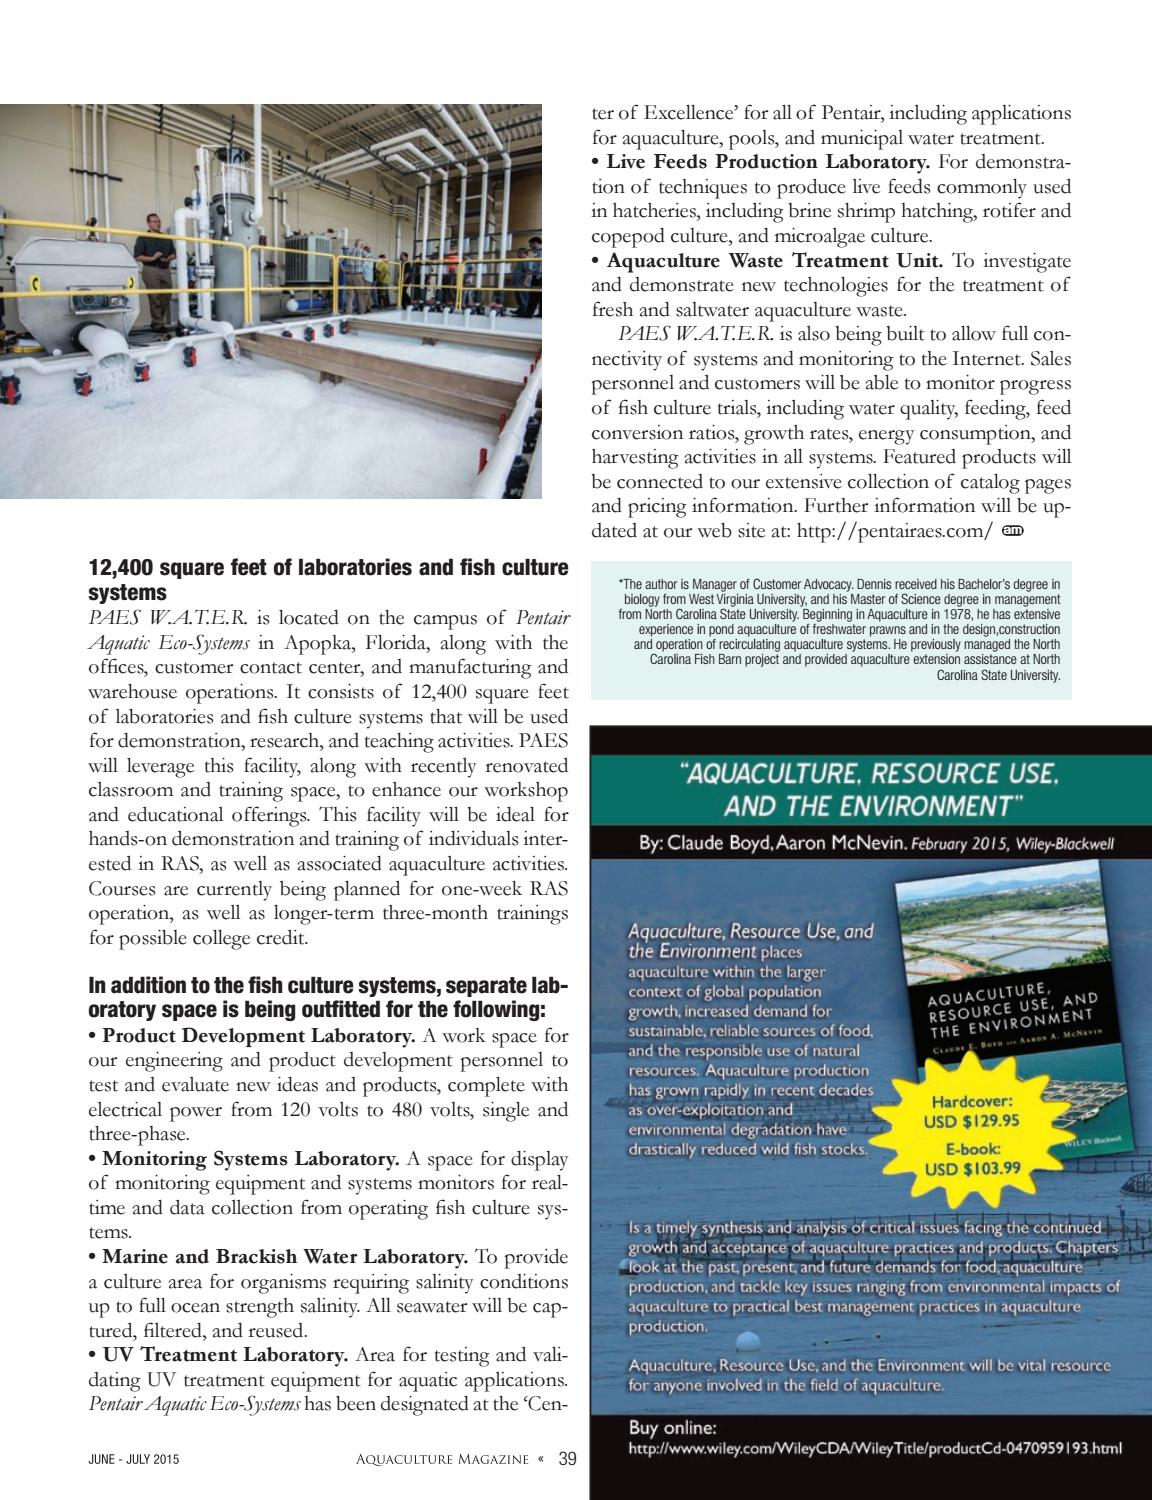 Aquaculture Magazine June / July 2015 Volume 41 Number 3 by